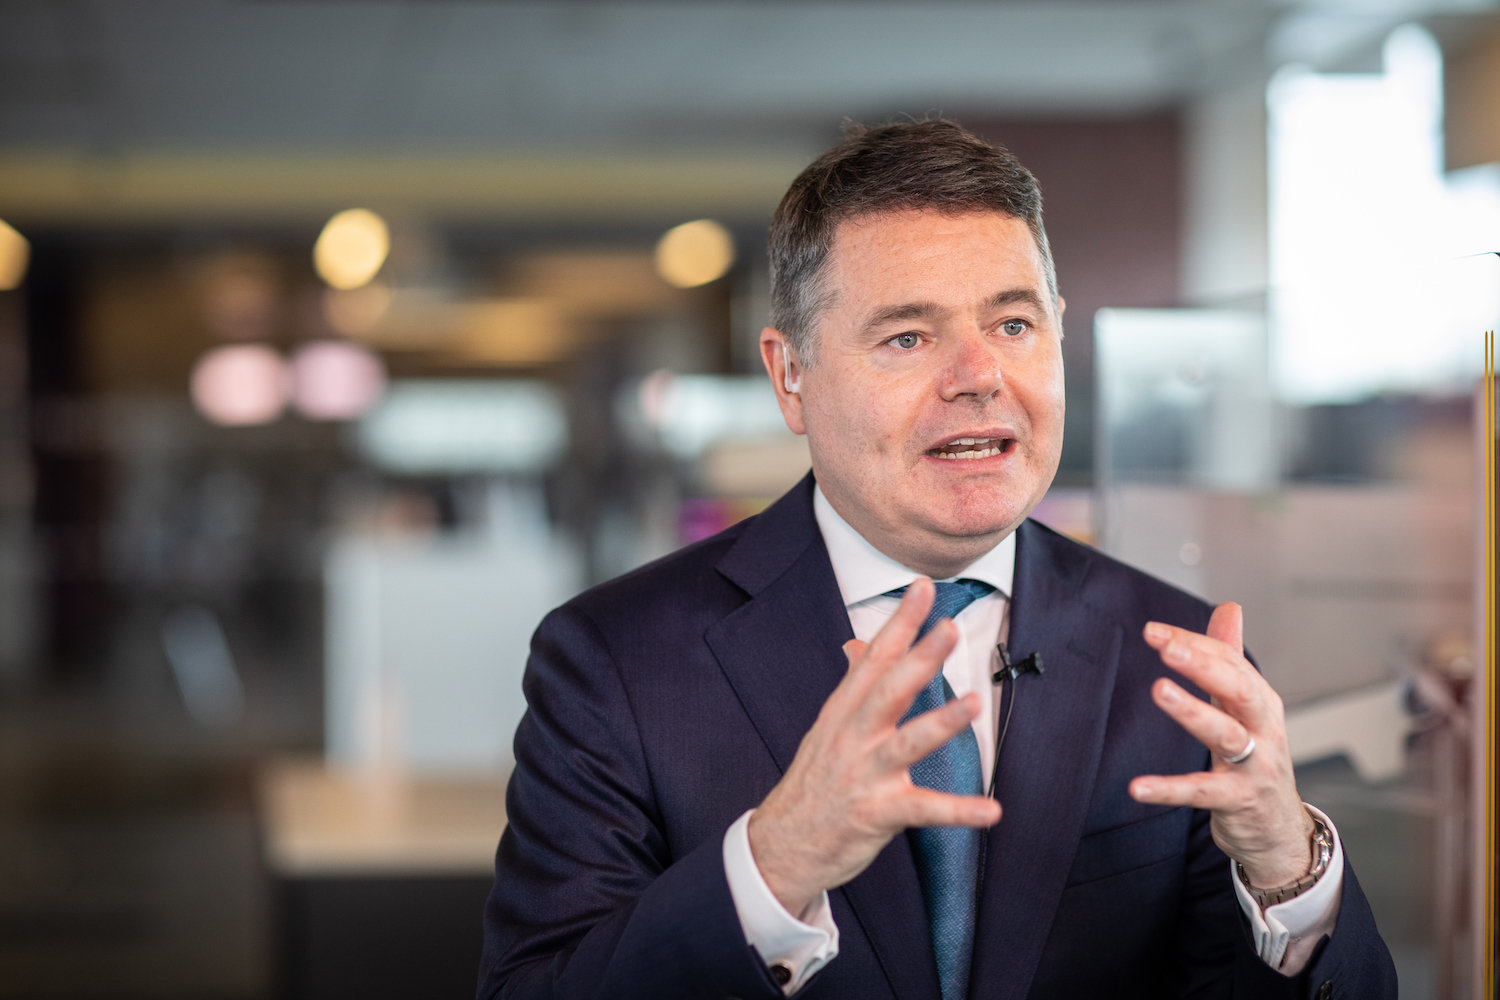 Paschal Donohoe, Ireland's finance minister, discusses the global corporate tax deal during an interview with Bloomberg Television in Dublin on Friday. (Bloomberg Photo)